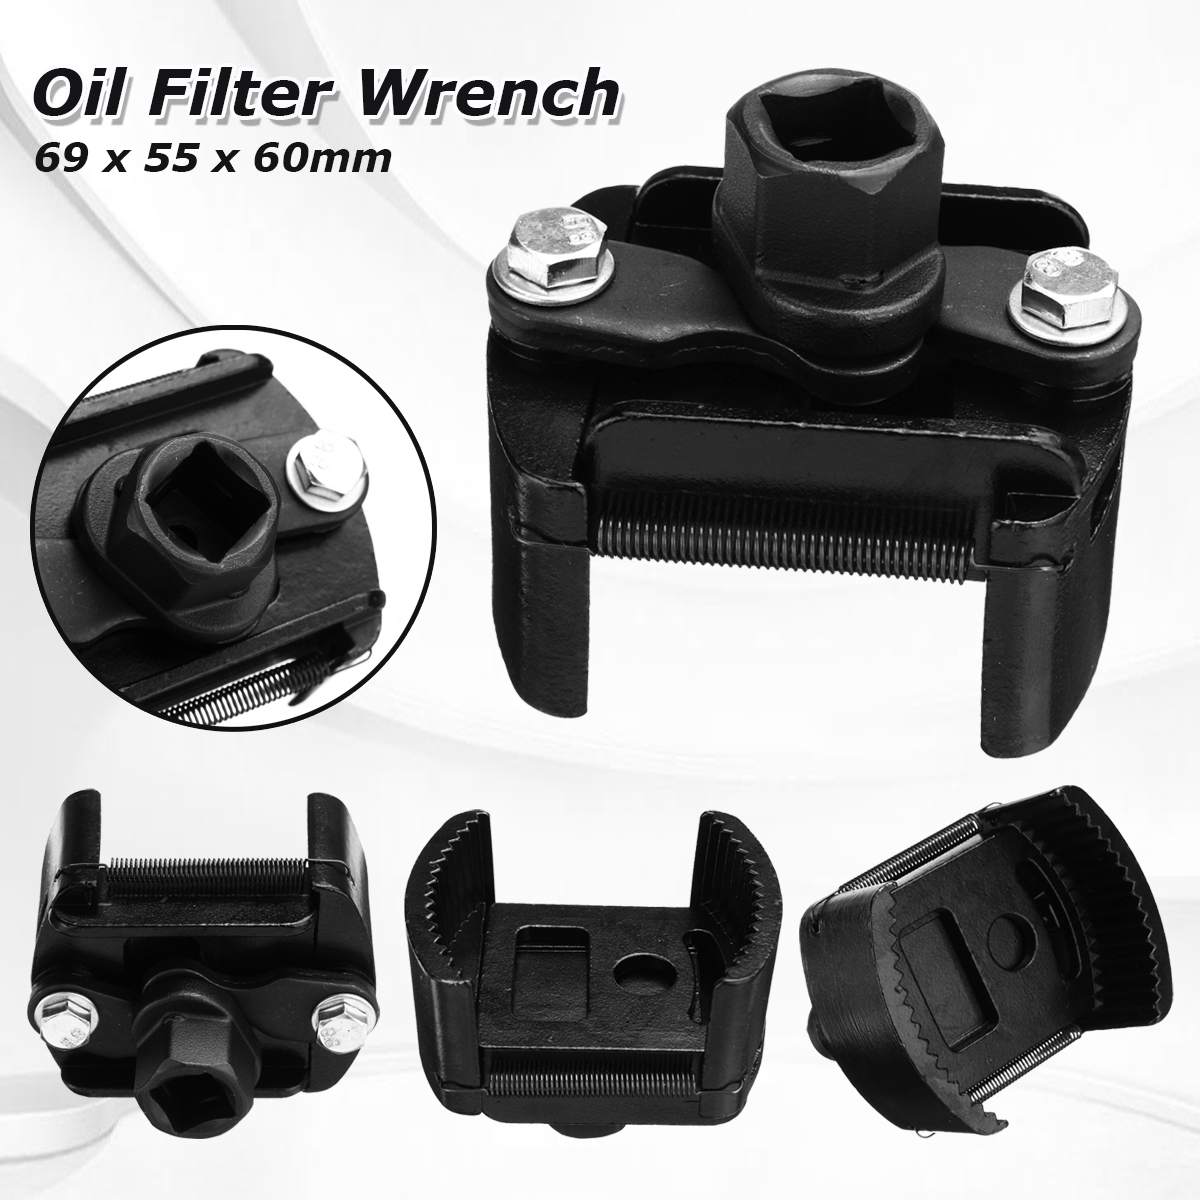 60-80mm Adjustable Two-claw Filter Wrench Oil Filter Wrench Housing Spanner Remover 1/2'' 901 915 cap oil filter wrench 1 2 square drive oil filter removel tools filter socket wrench spanner hand tool